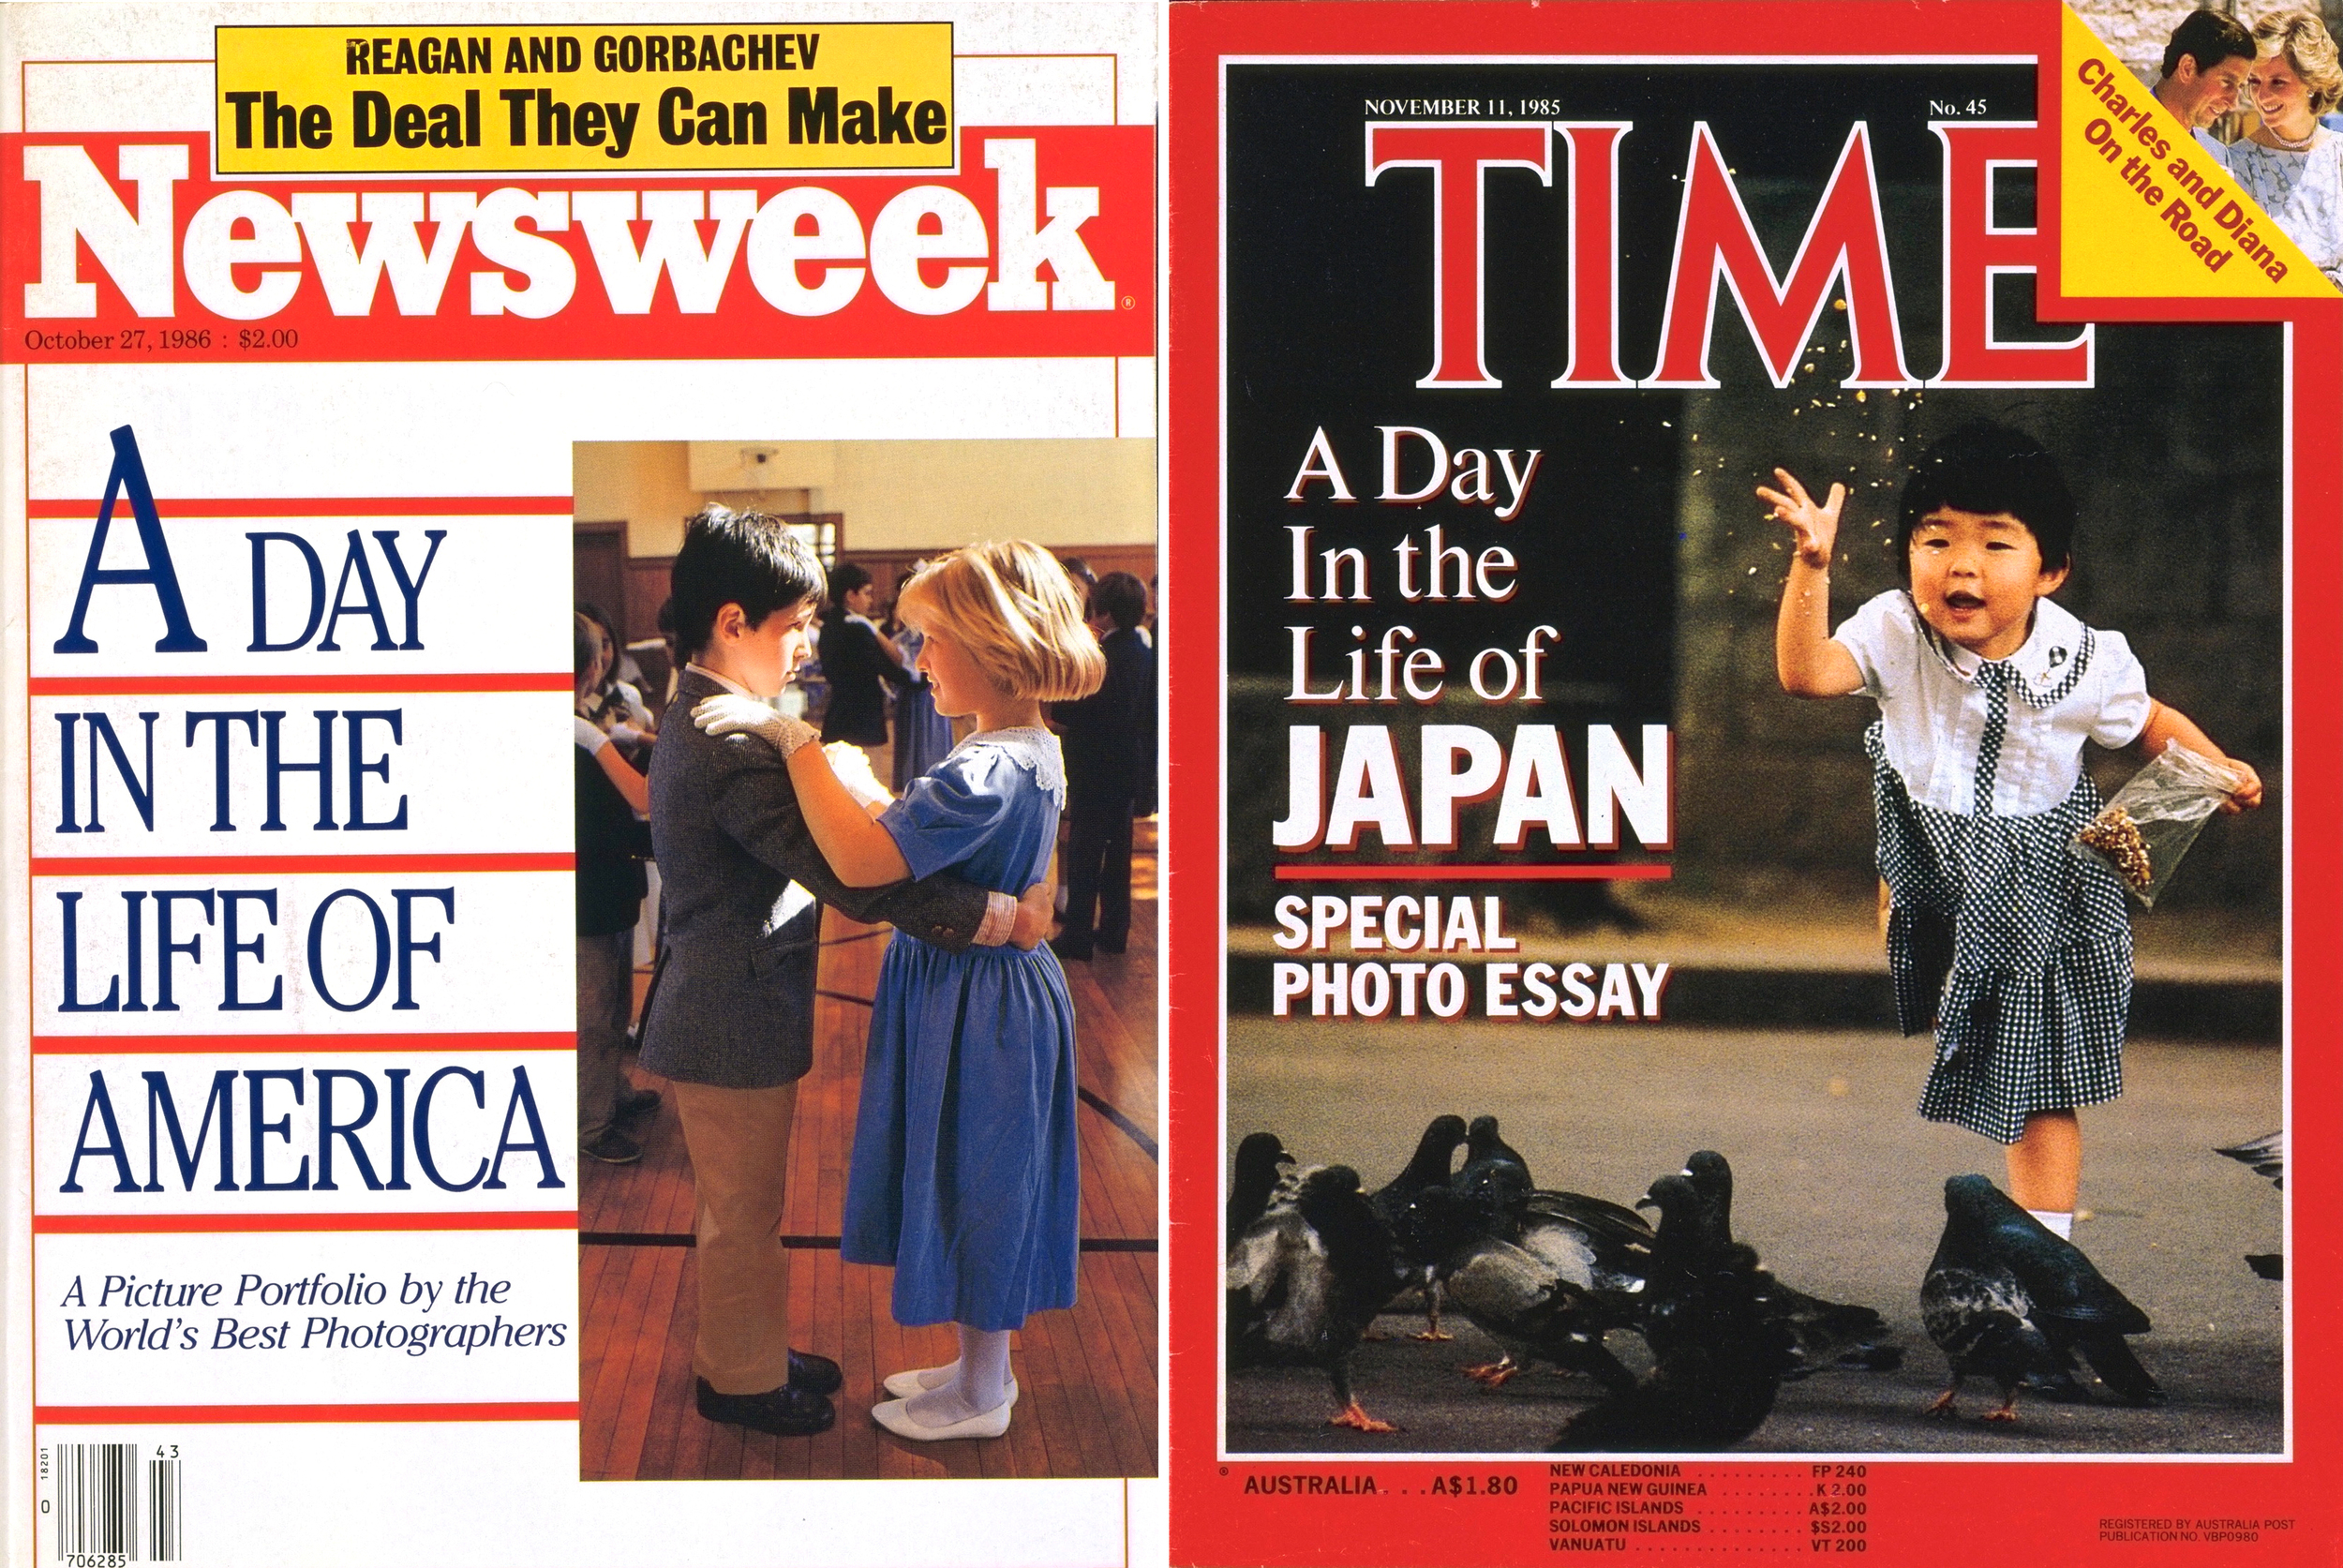 Bidding Wars: TIME & Newsweek often battled for magazine rights for the DITLO books.